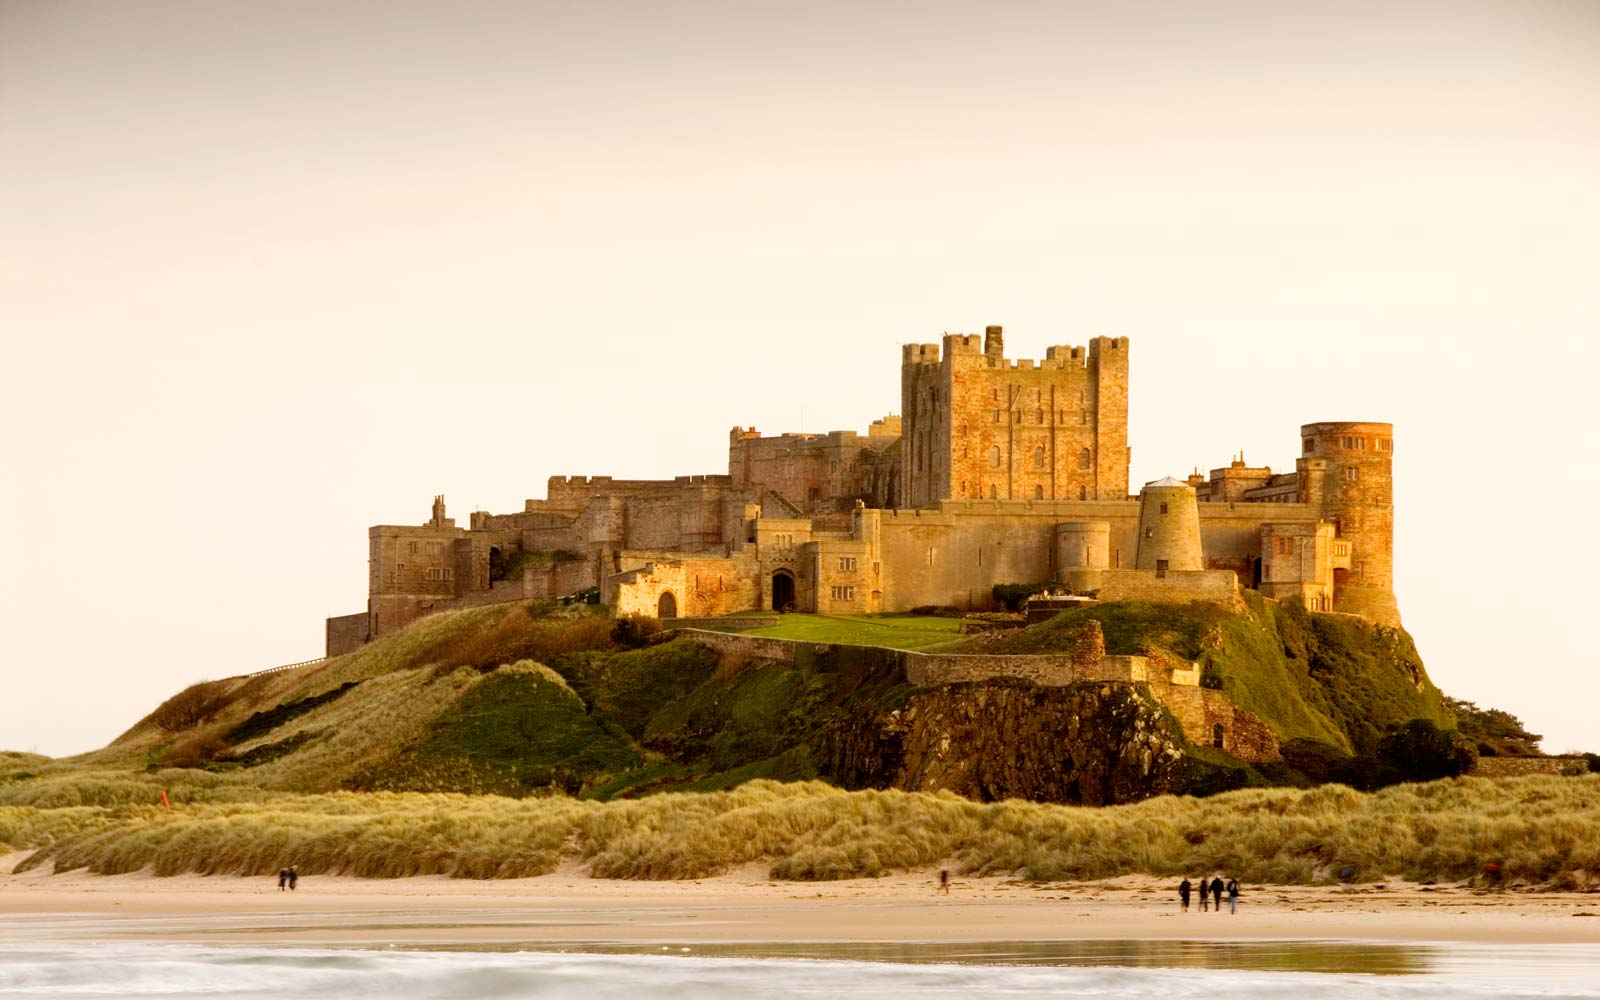 Bamburgh Castle's three-bedroom apartment lets you live like royalty for less